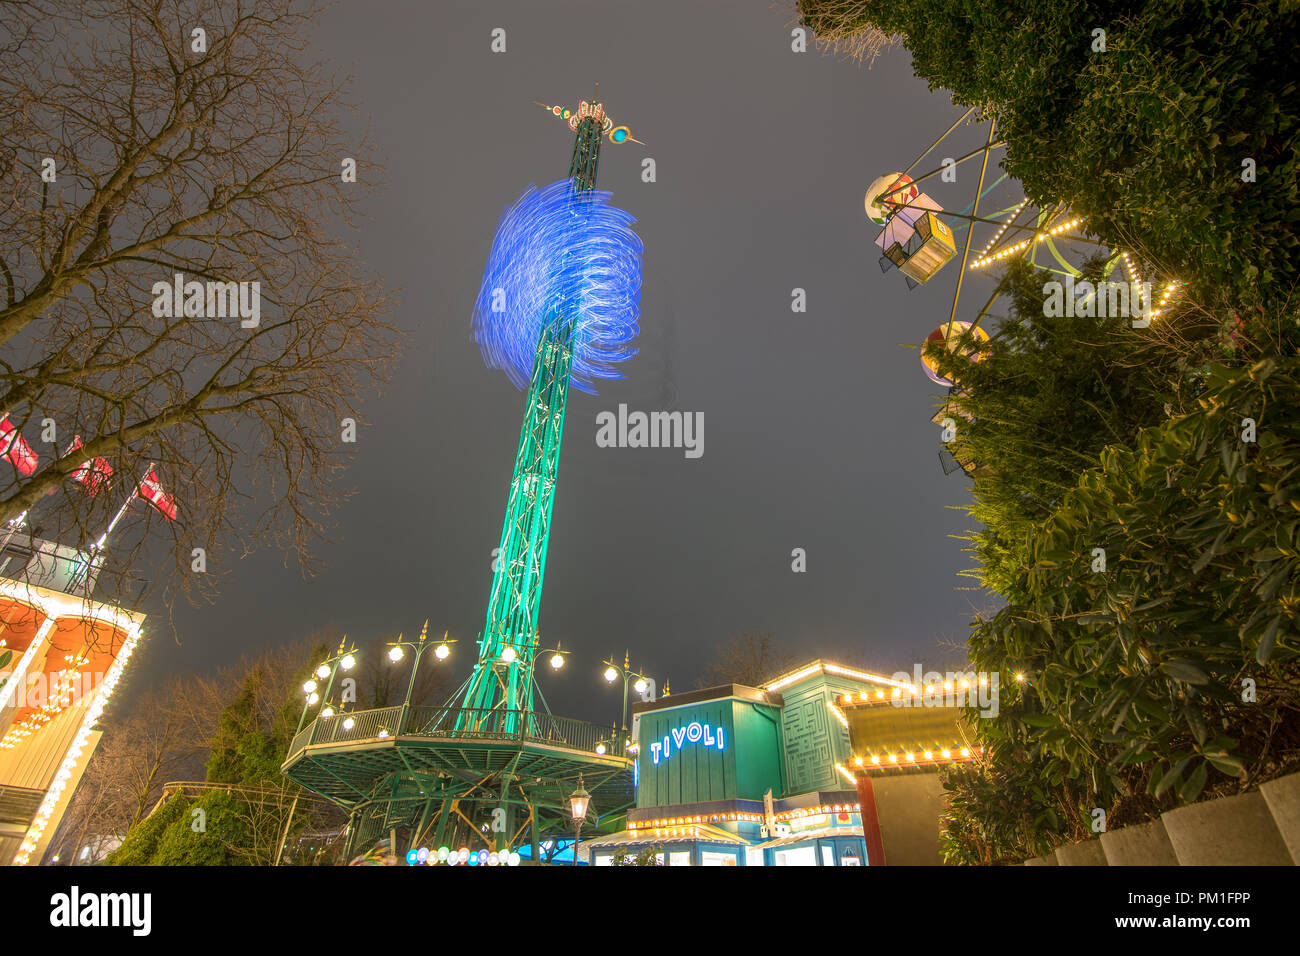 COPENHAGEN, DENMARK, MARCH 31, 2018: The The Star Flyer descends and rotates as part of it's operation next to the Ferris Wheel, and above the Little  - Stock Image